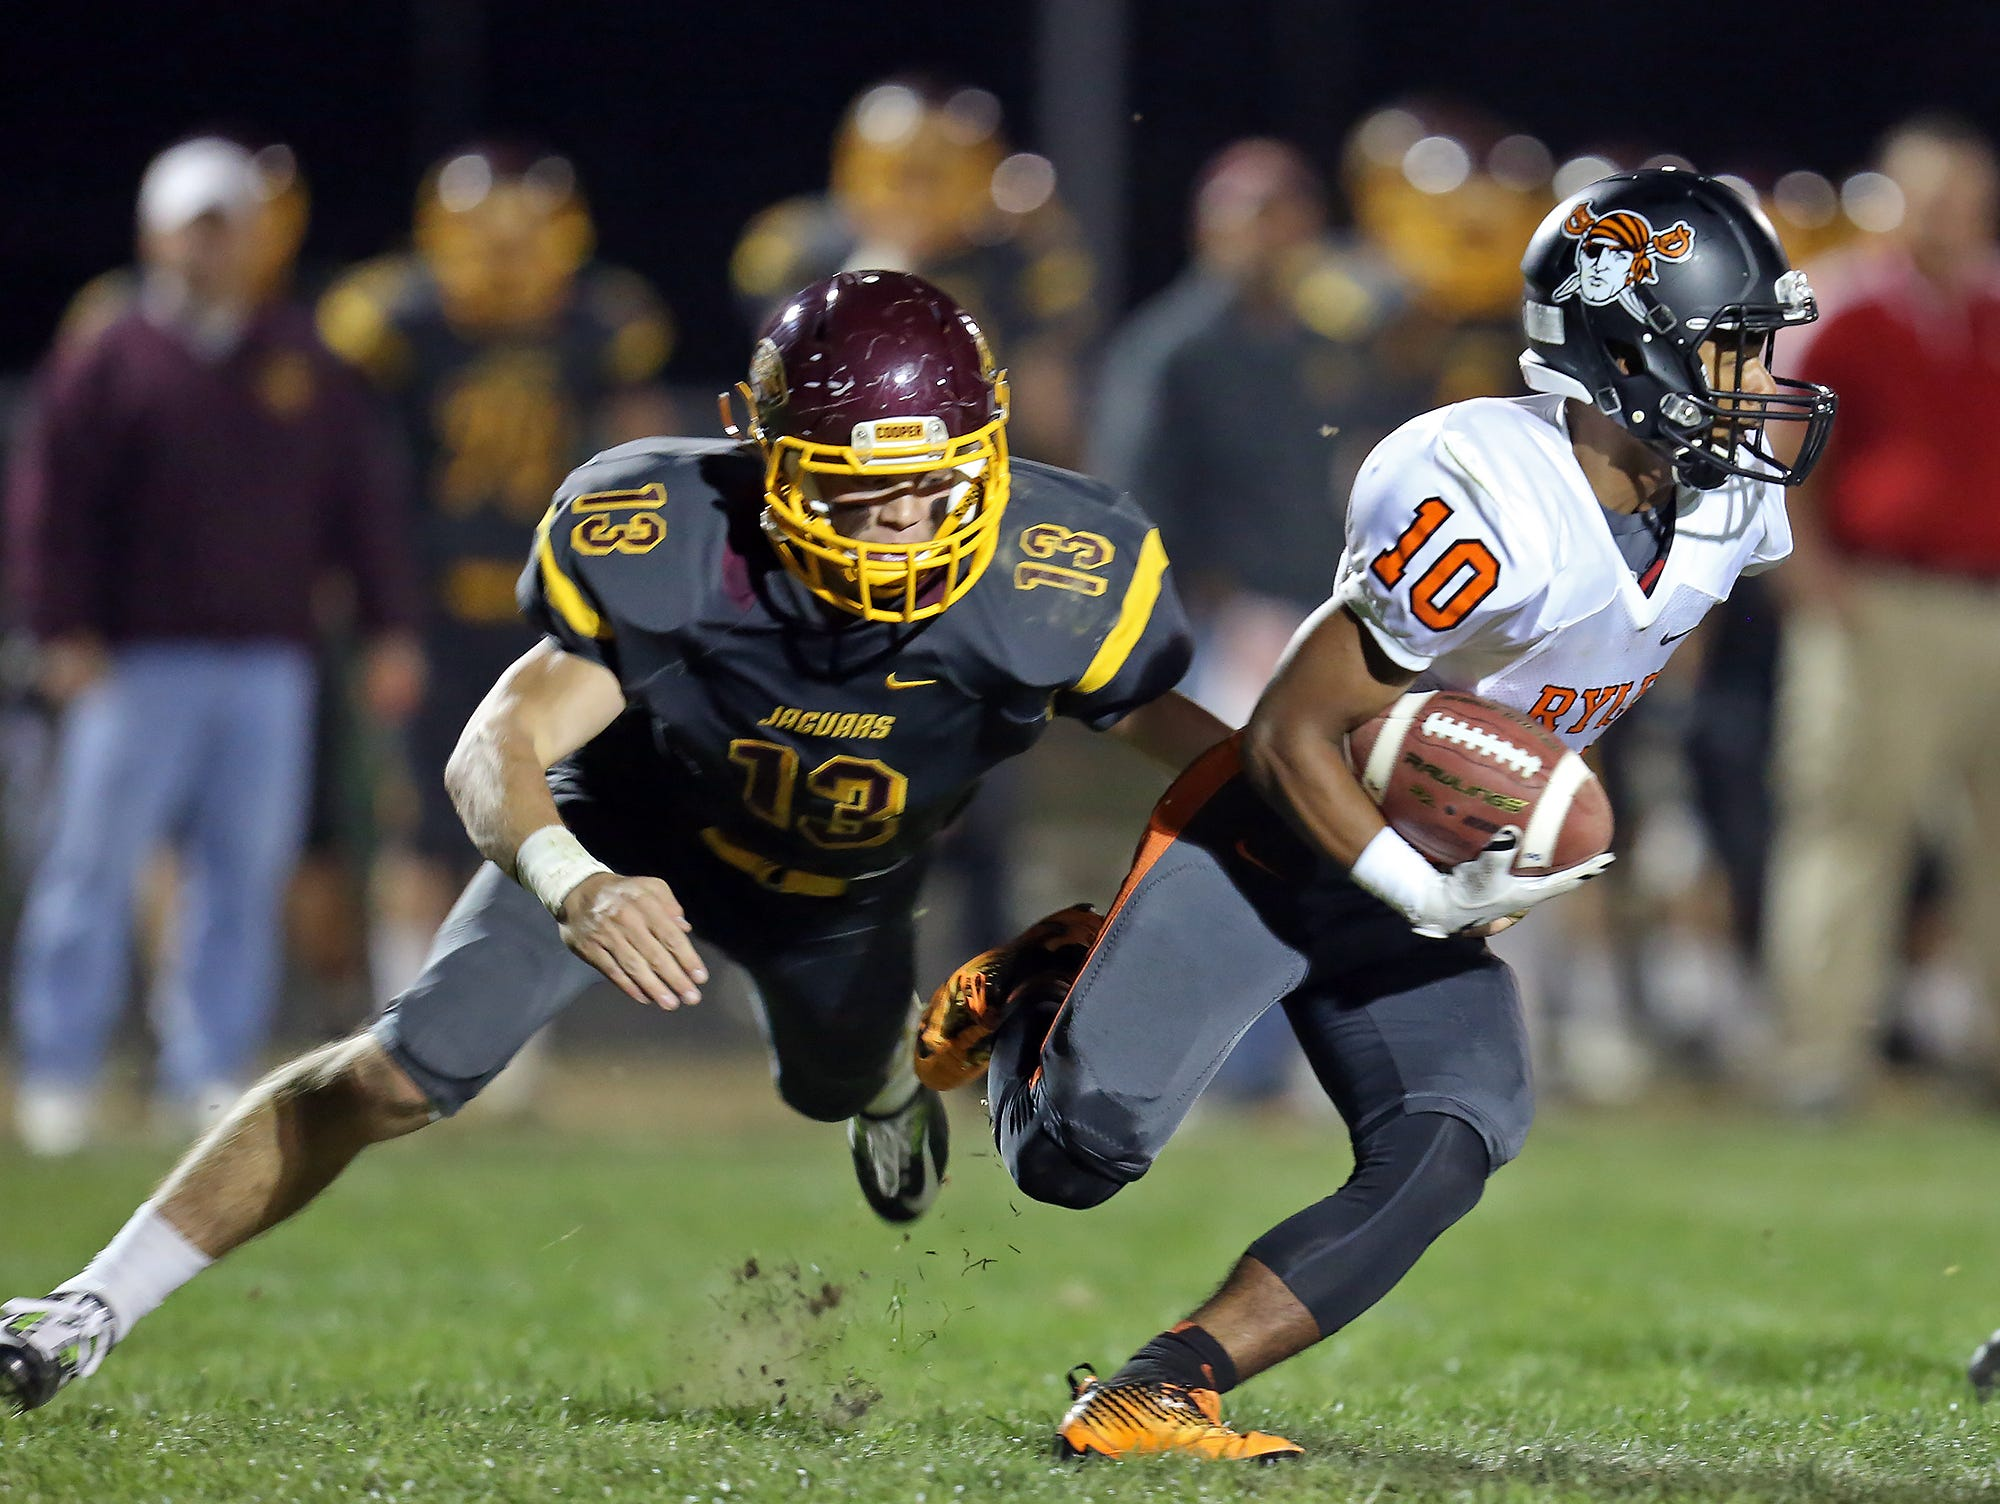 Cooper DB Justin Schlarman brings down Ryle KR Eric Wright for no gain on the return.